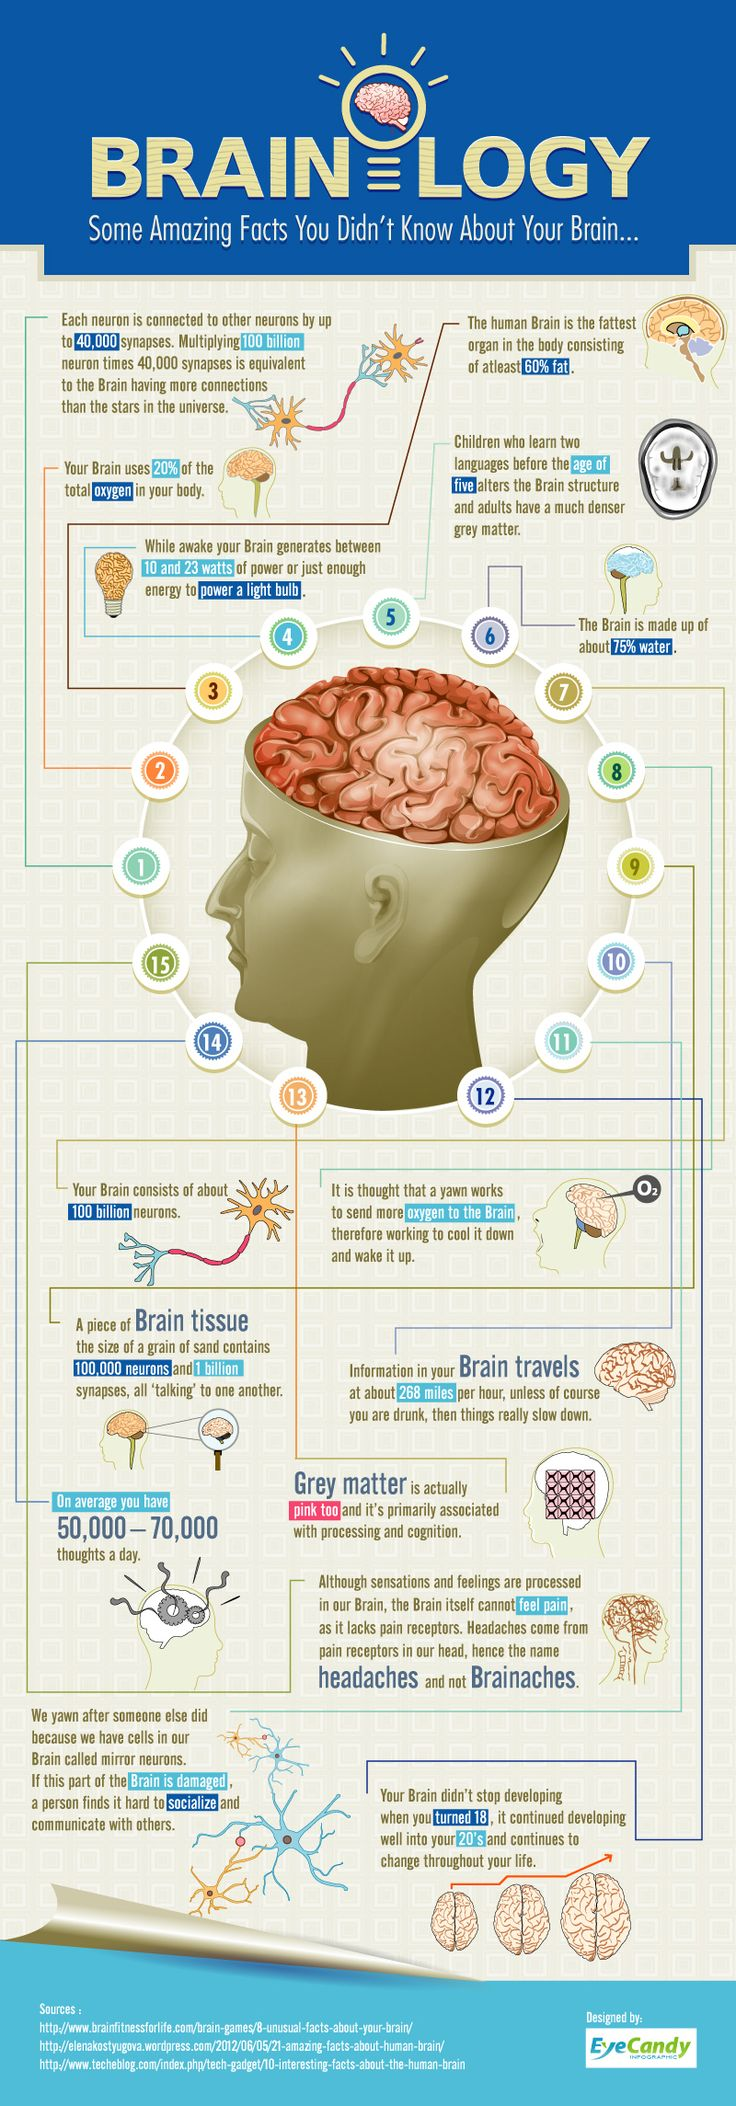 94 best Brain Mapping images on Pinterest | Learning, Neuroscience ...